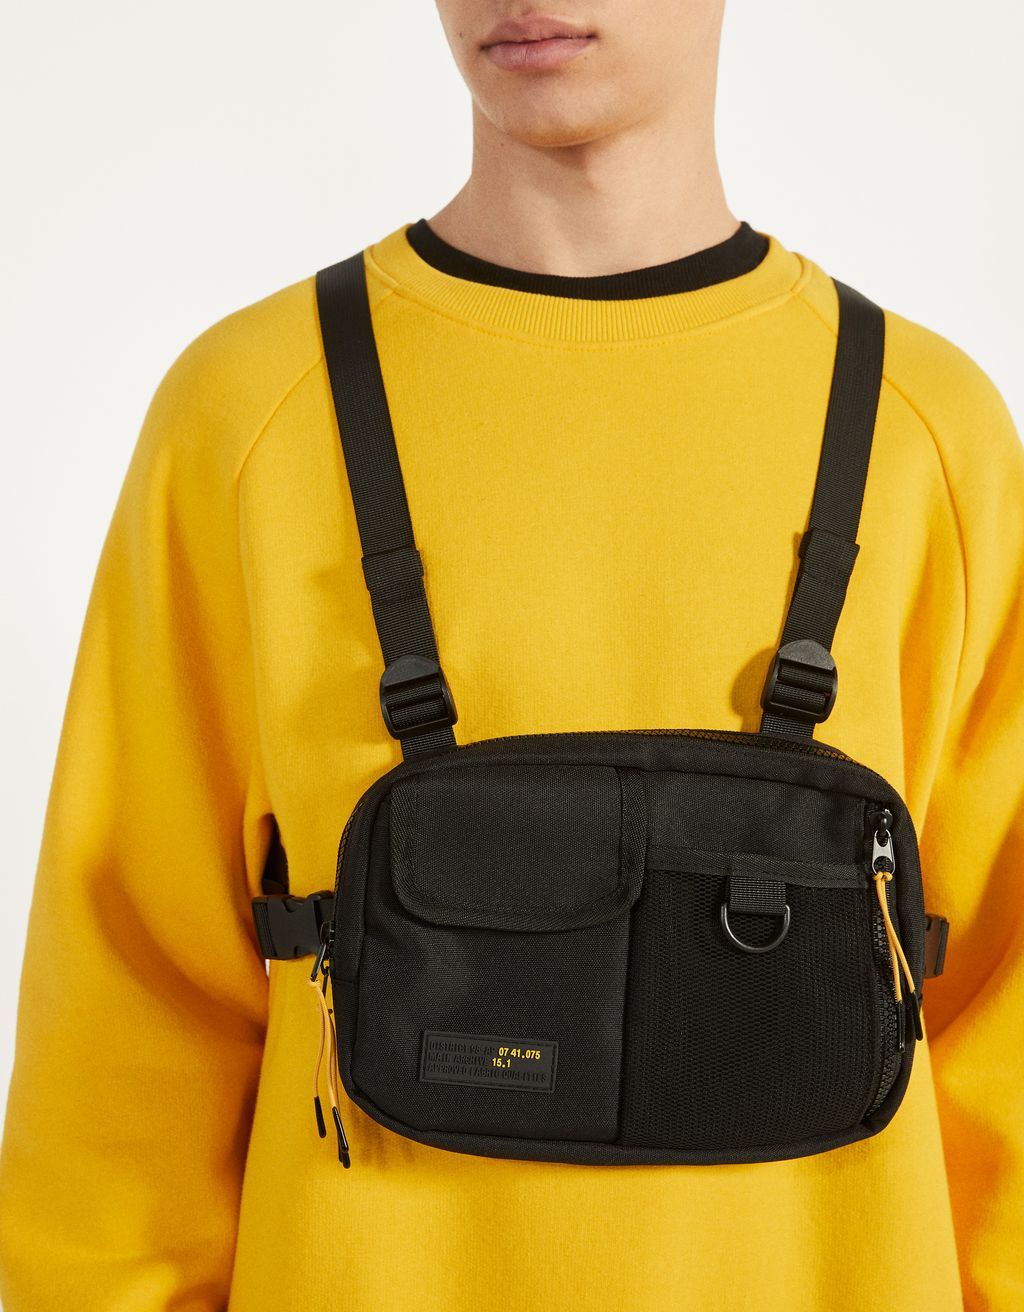 Chest-bag style belt bag